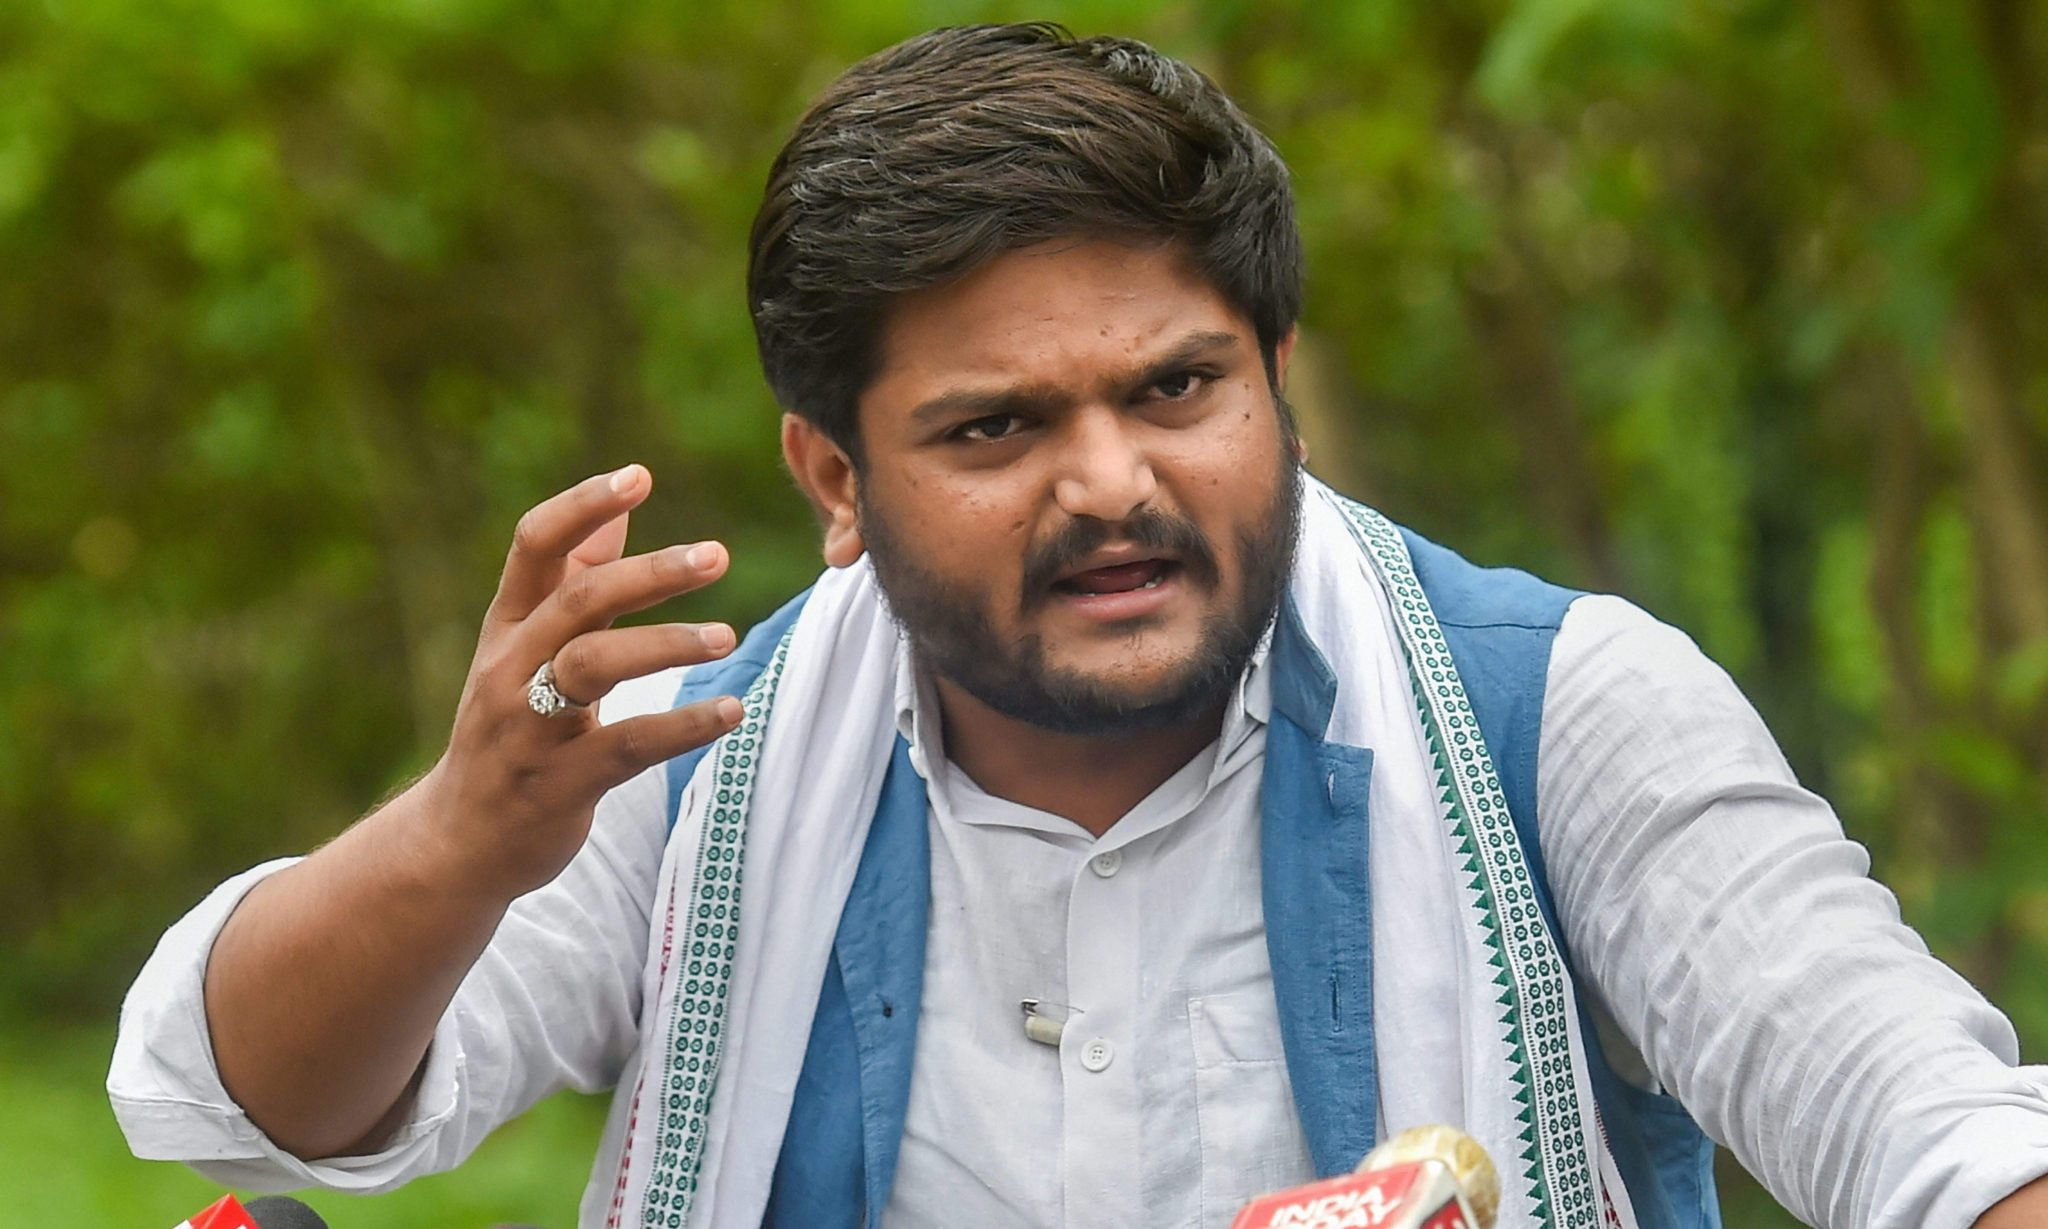 Ahmedabad court frames sedition charges against Hardik